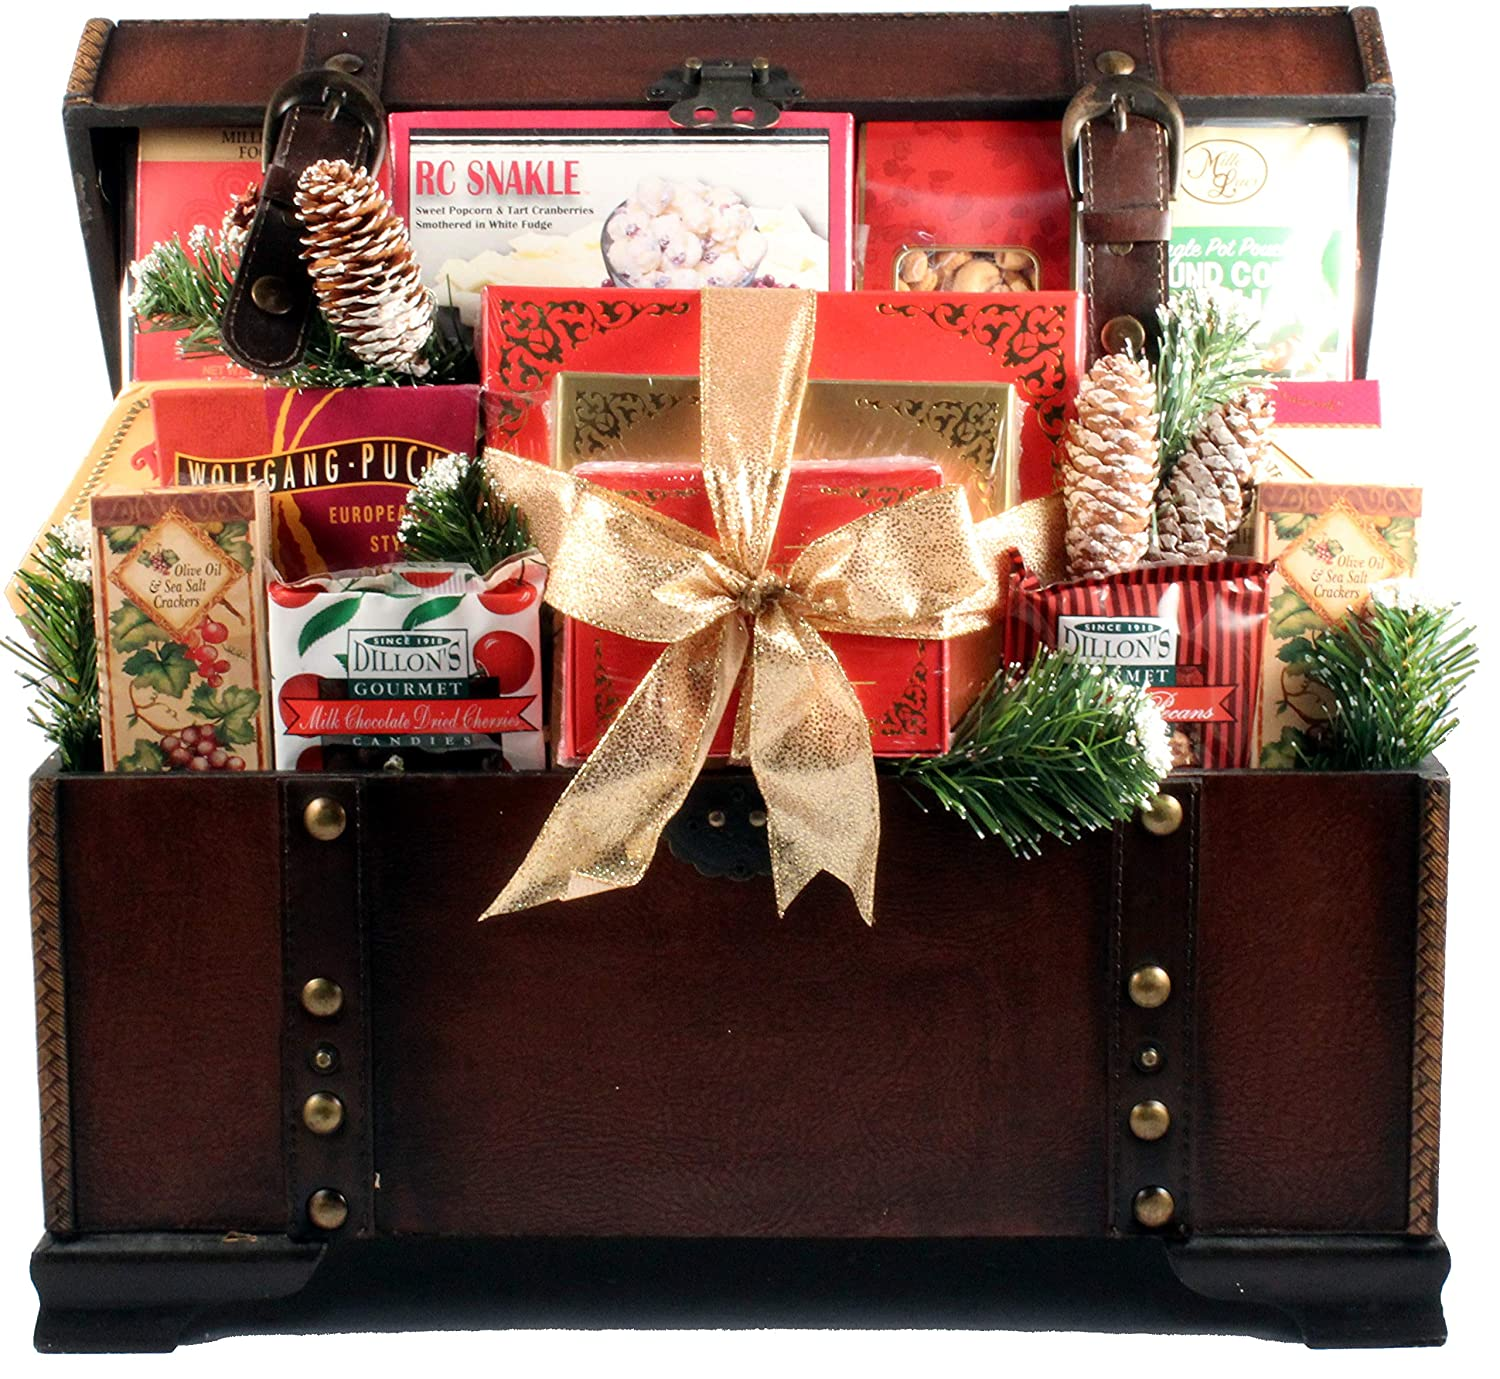 The V.I.P, Large Gourmet Gift Basket in Wooden Trunk with Chocolates, Cookies, Meats, Cheeses, Coffees, Candies, Cakes and Other Holiday Favorites (Medium), 32 Pounds